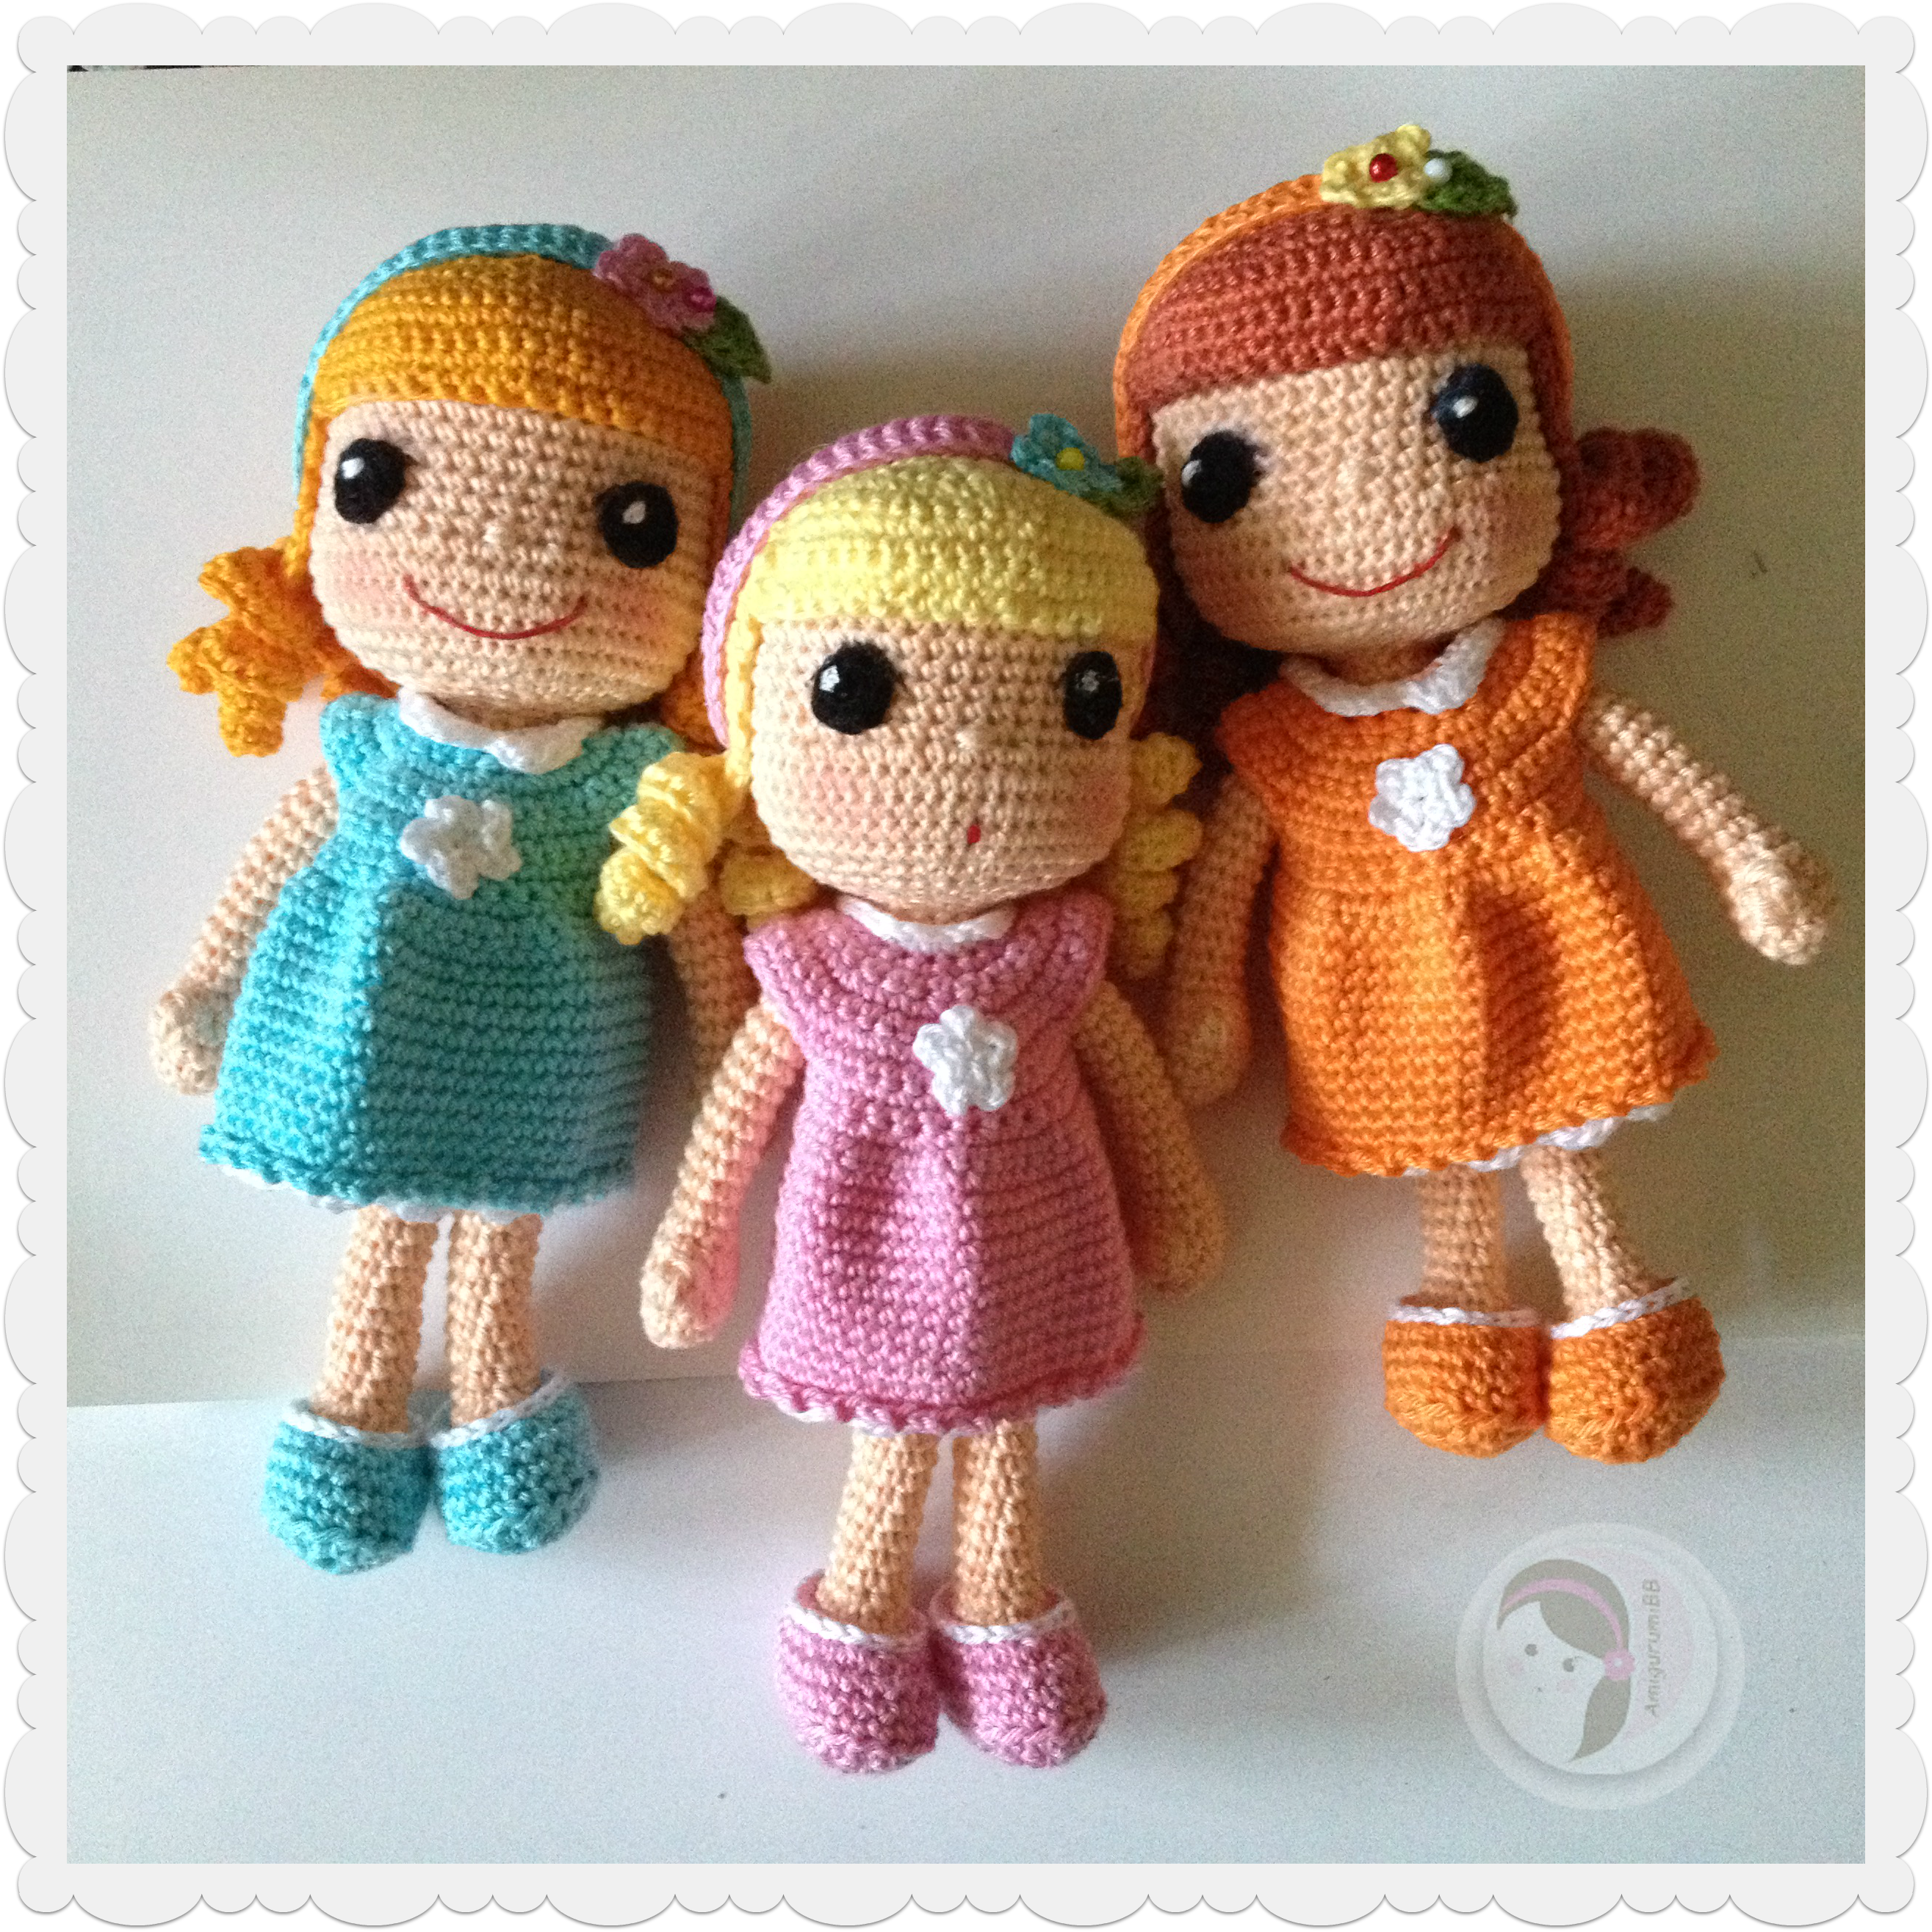 Amazon.com: Puffy Pals Amigurumi Crochet Pattern (Easy Crochet ... | 2630x2630